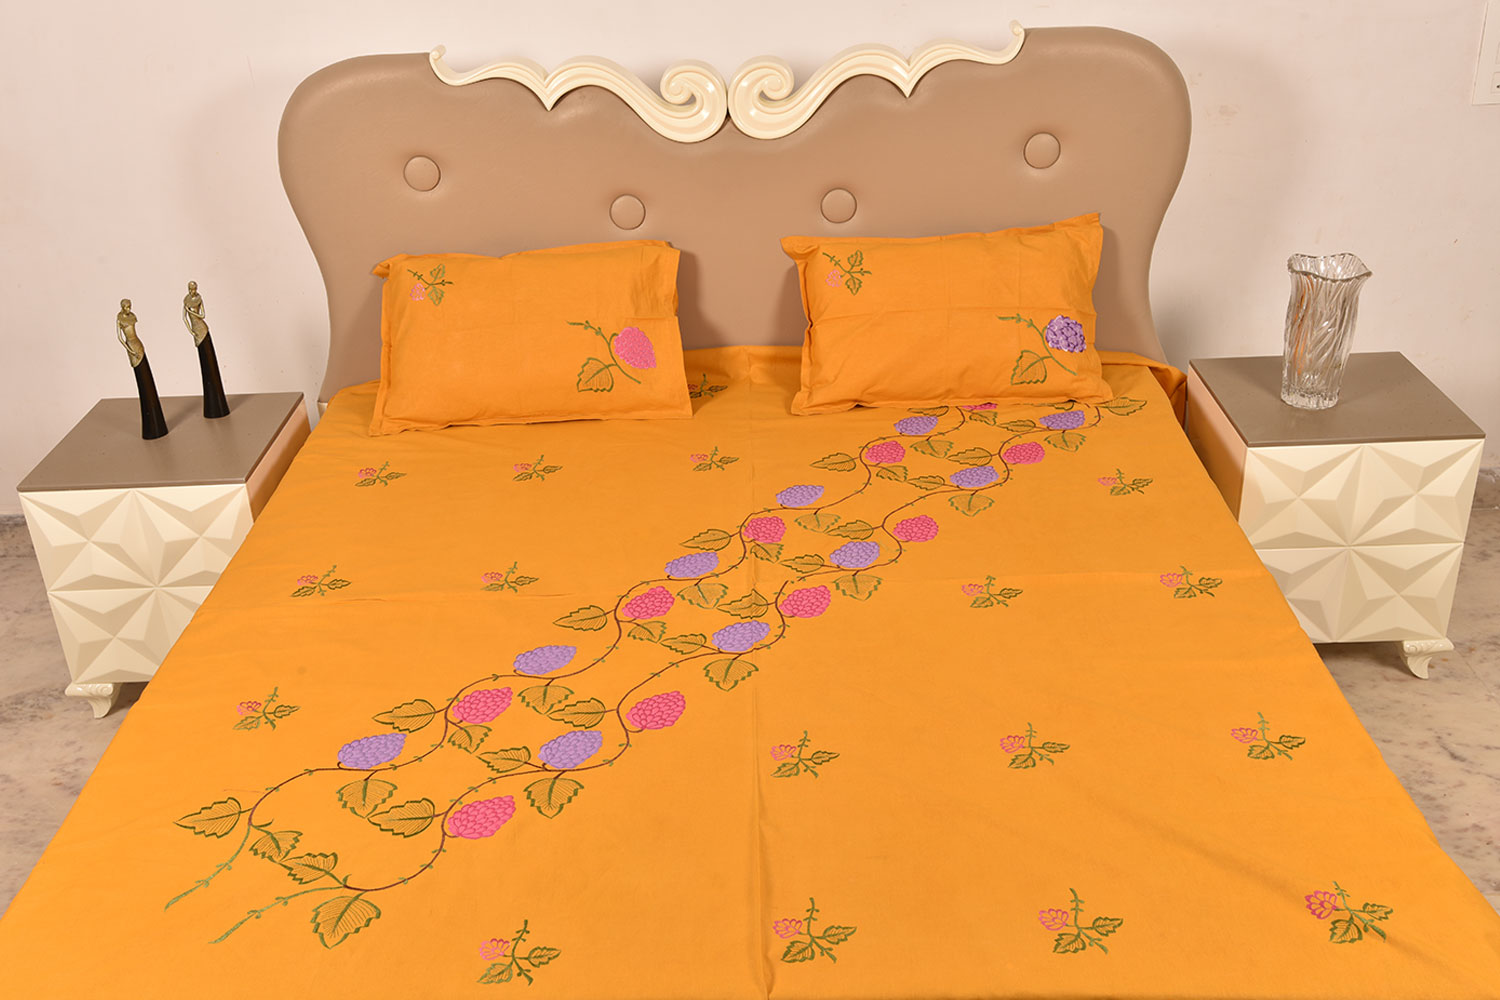 Handmade bed sheets design - Orange Handmade Bed Sheet Linen With Pink Purple Floral Design Beautiful Decorative Stylish